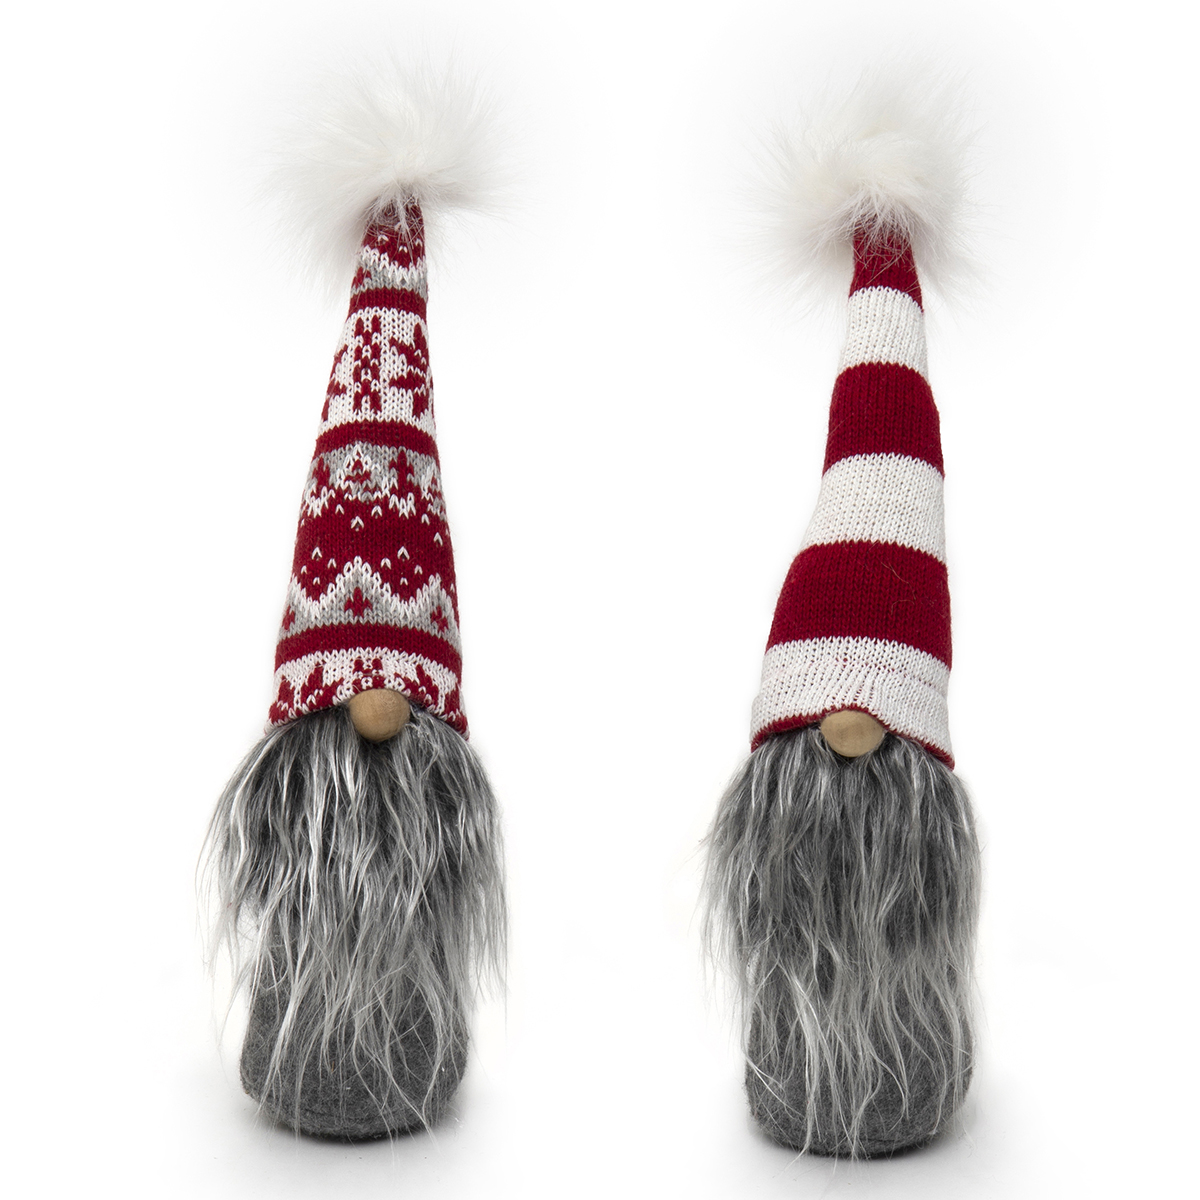 GNOME WITH PUFF, WIRED RED/WHITE HAT,